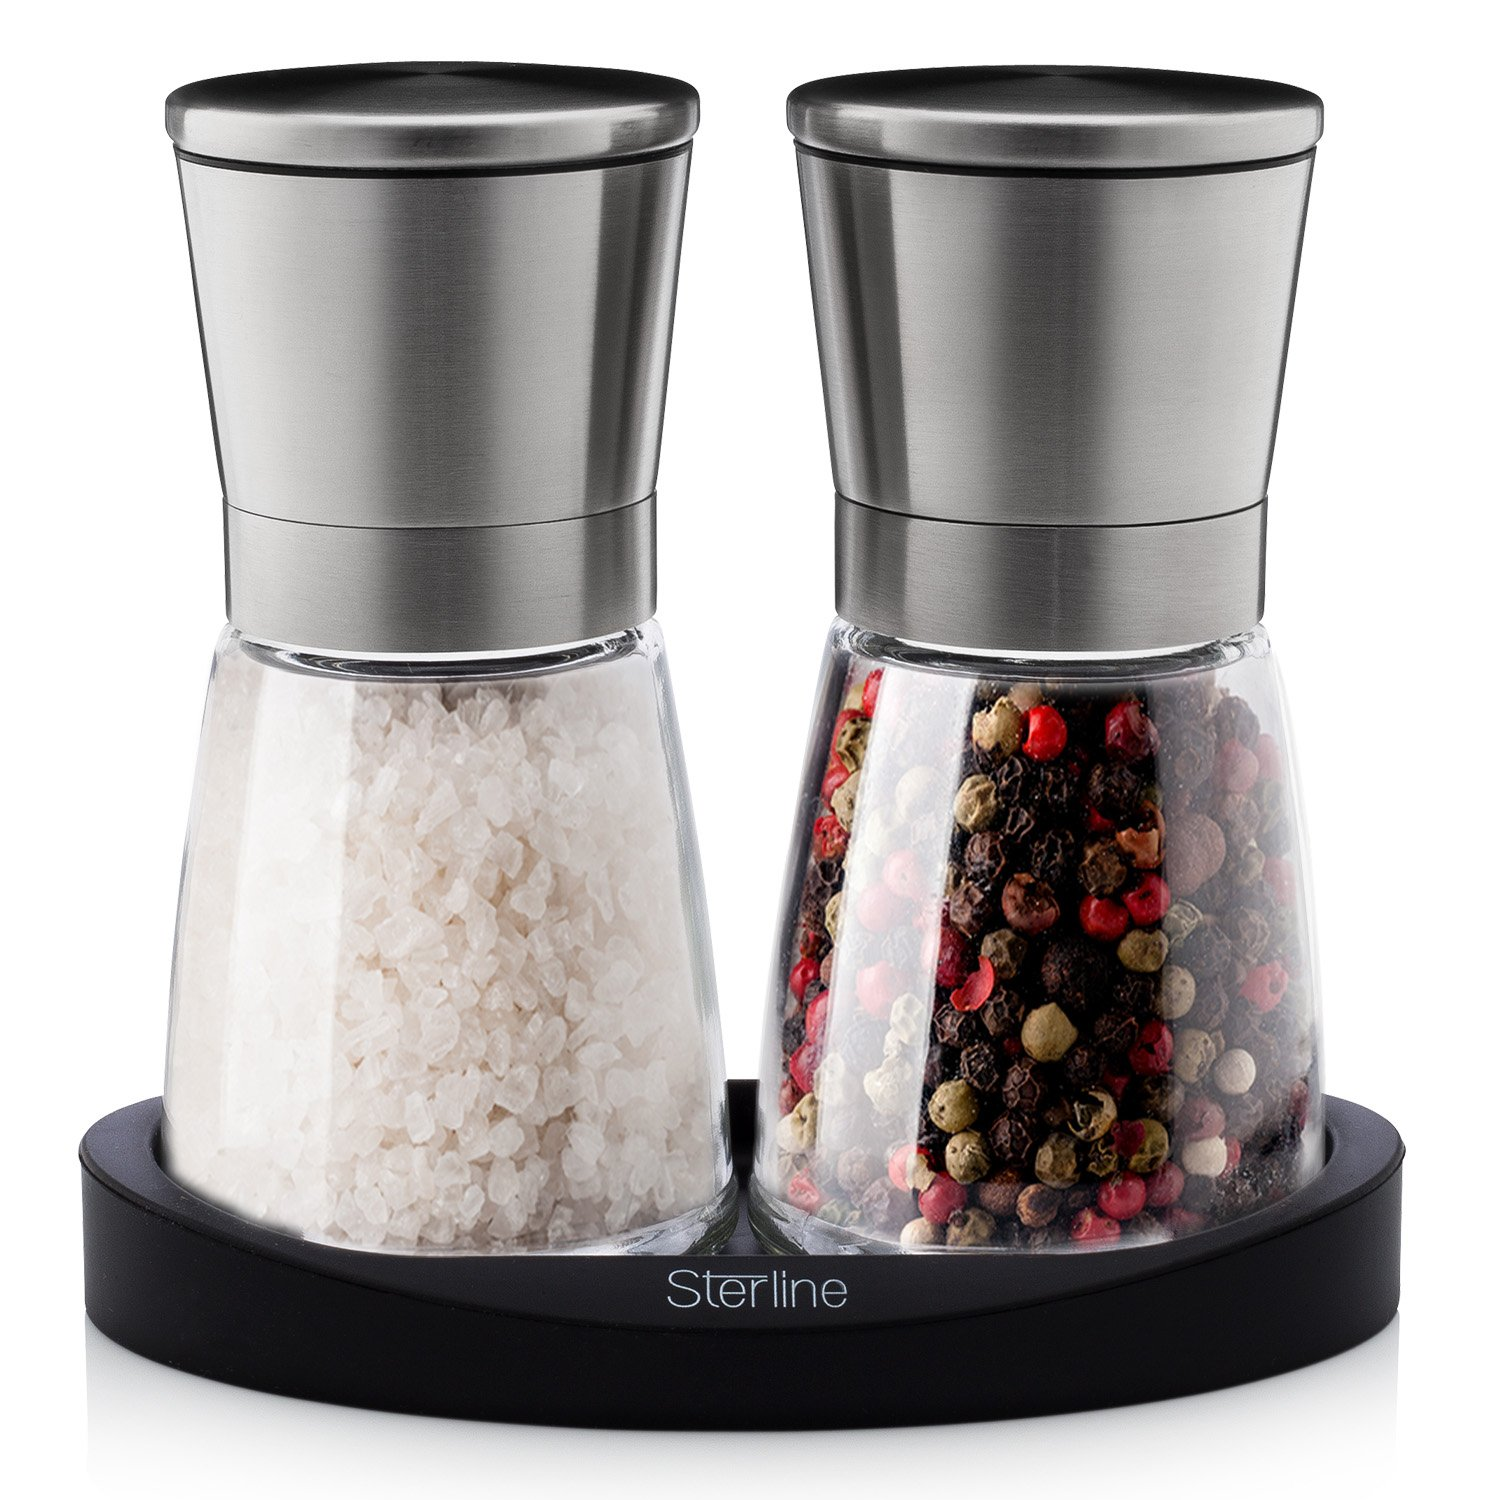 amazoncom sterline premium salt and pepper grinder shaker set  - amazoncom sterline premium salt and pepper grinder shaker set adjustablefine precision grinding manual refillable spice mill set for black pepperand